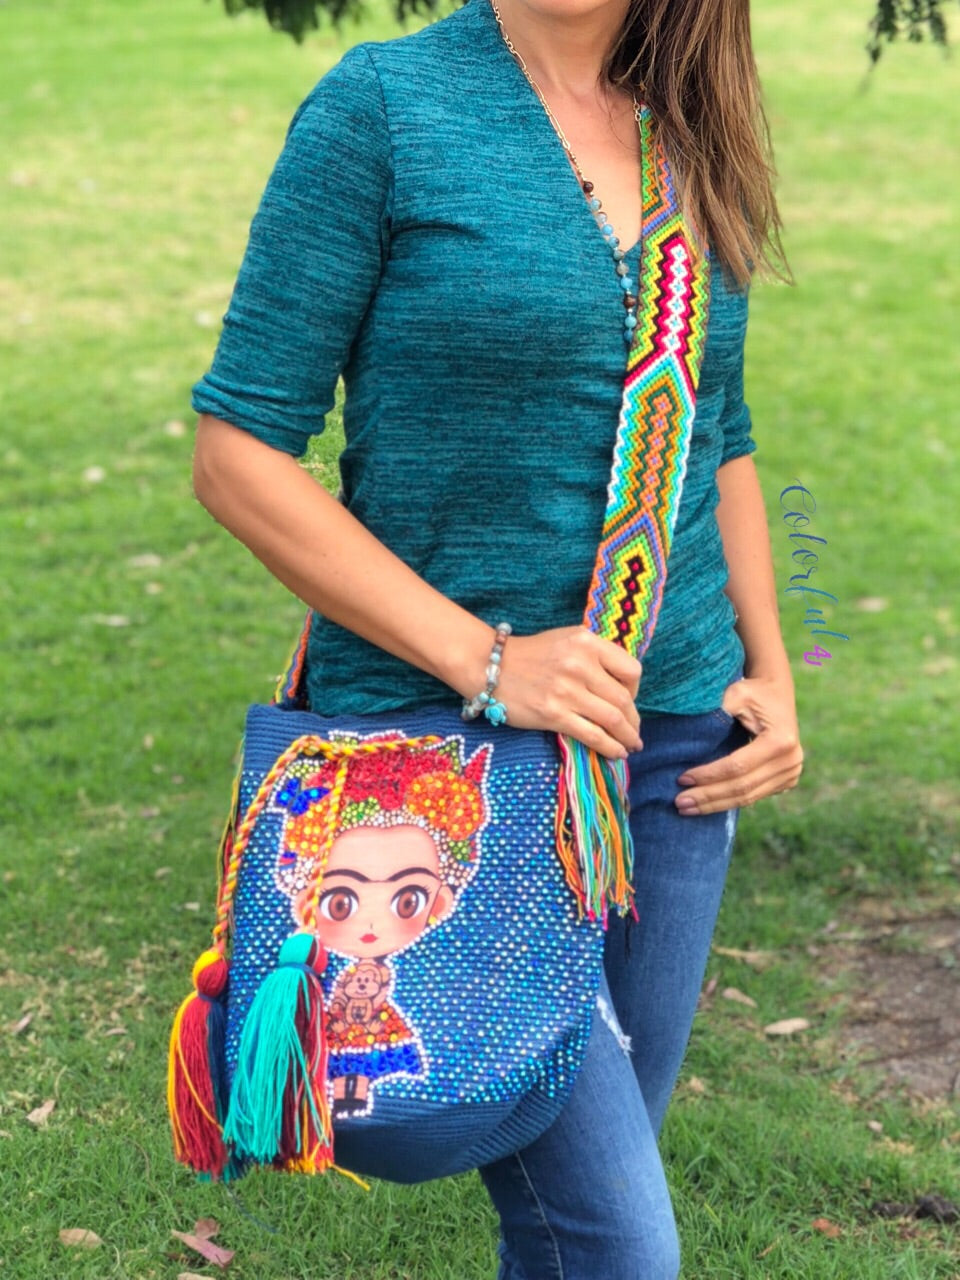 FRIDA Crochet Bag - Crossbody/Shoulder Bucket Bag-Boho Bag-Wayuu Bag